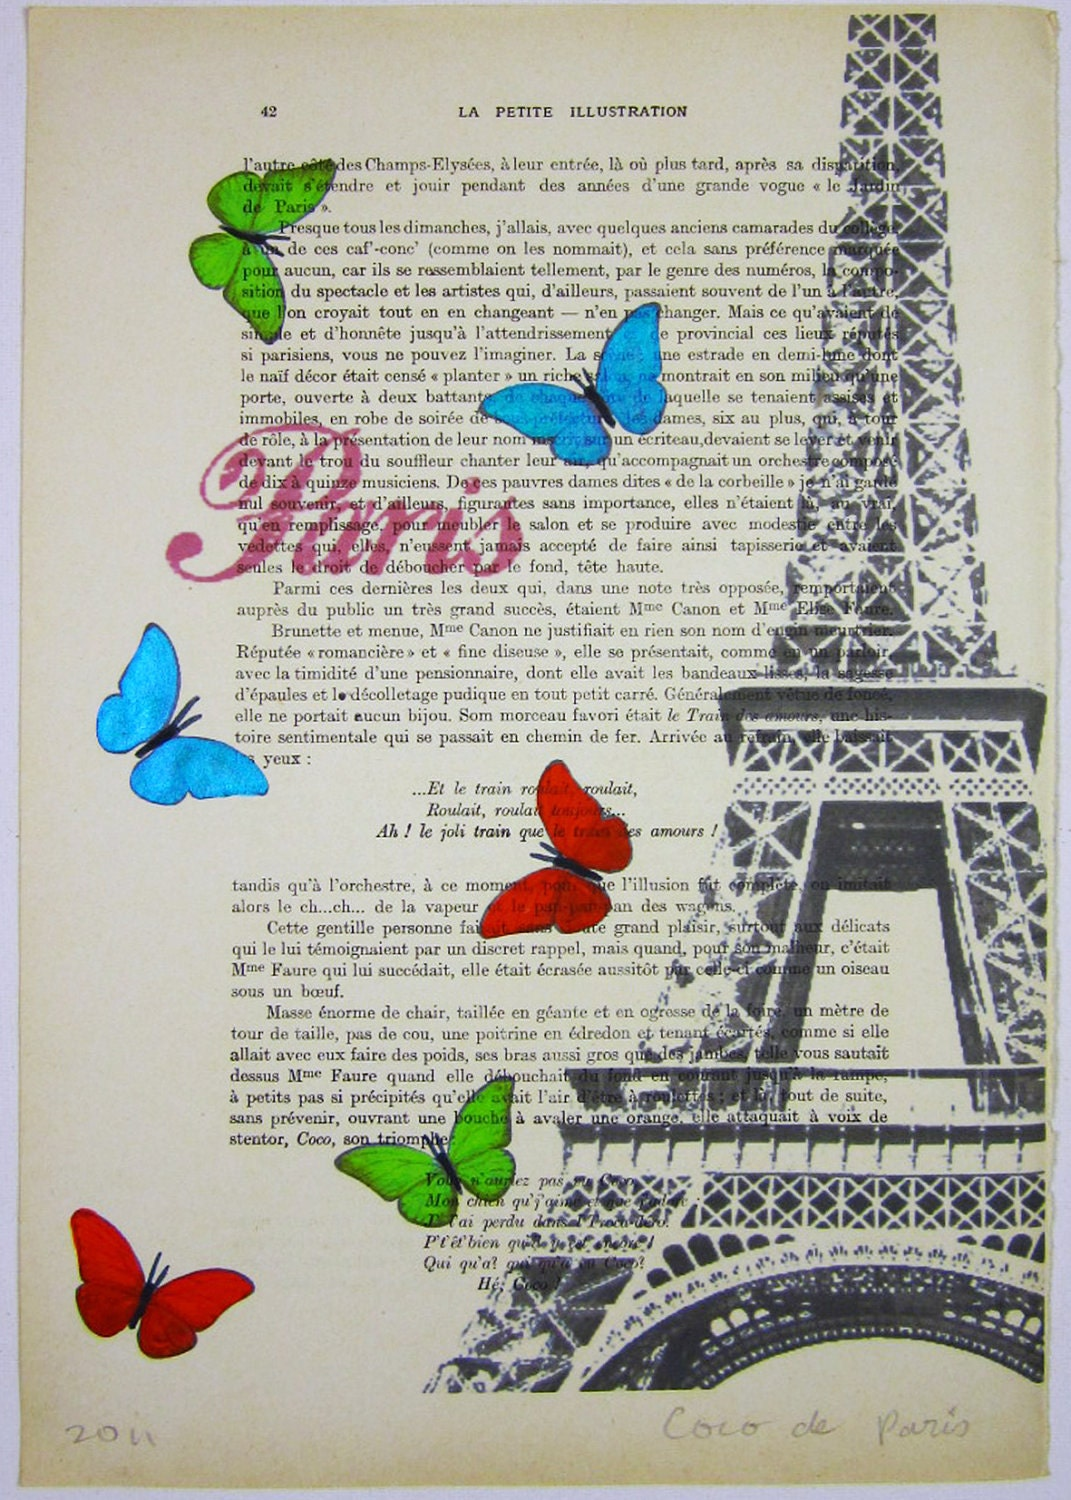 "������� �� ������ - Original ������ ������� ARTWORK �������� 'La Petit ����������� ""1920 ��������� ������ Parisien ���� De Paris"